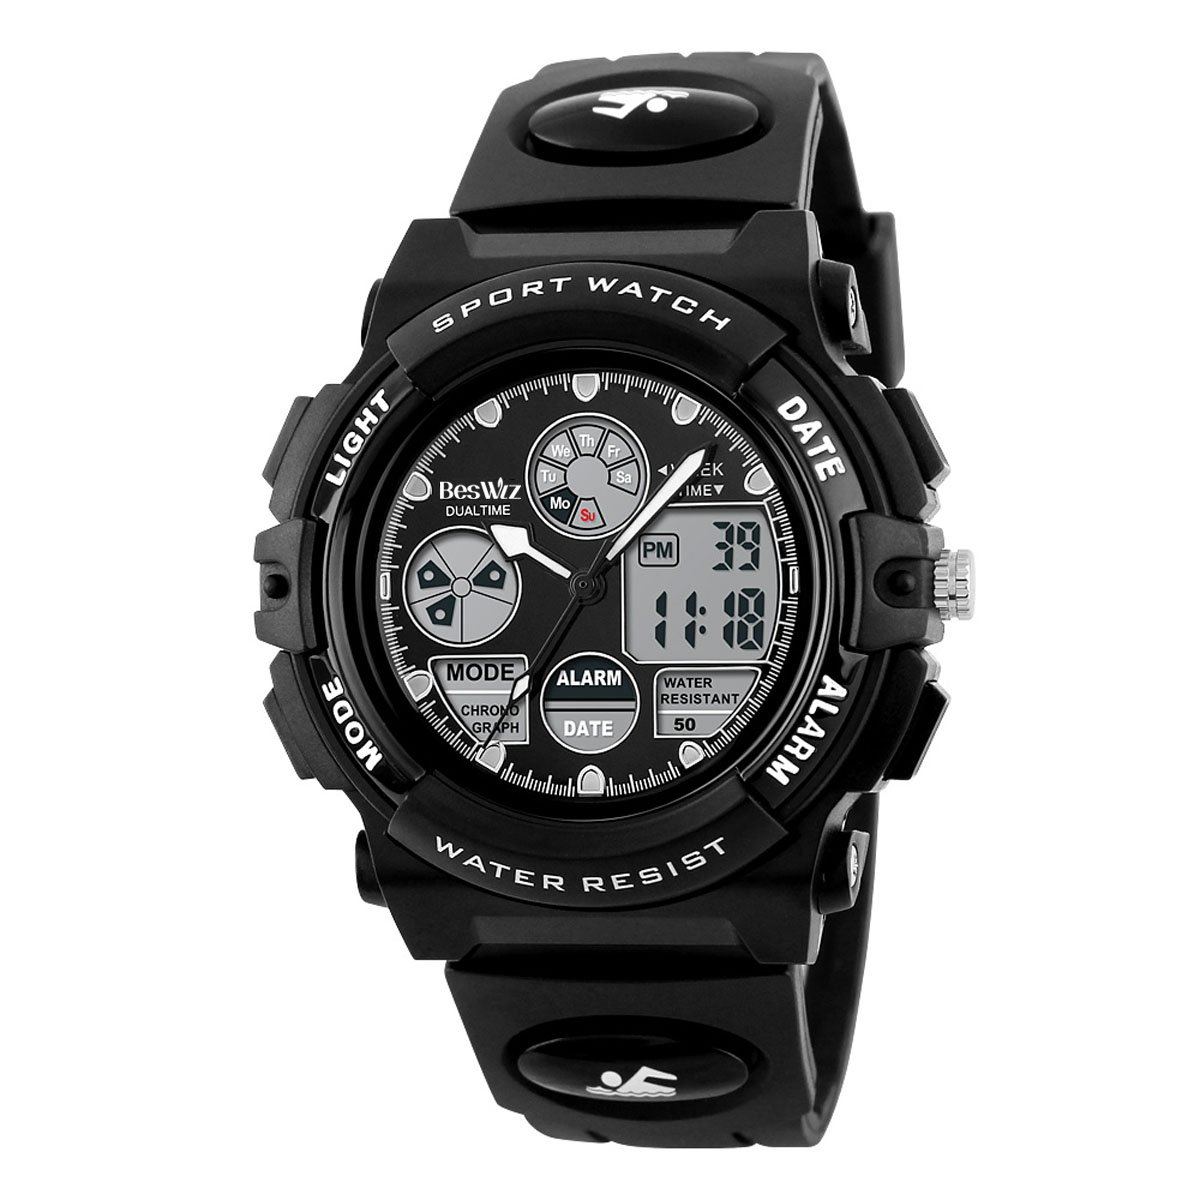 BesWLZ Boys Watches Multifunction Dual Time Digital Watches Alarm Sports Waterproof Kids Watches (Black)